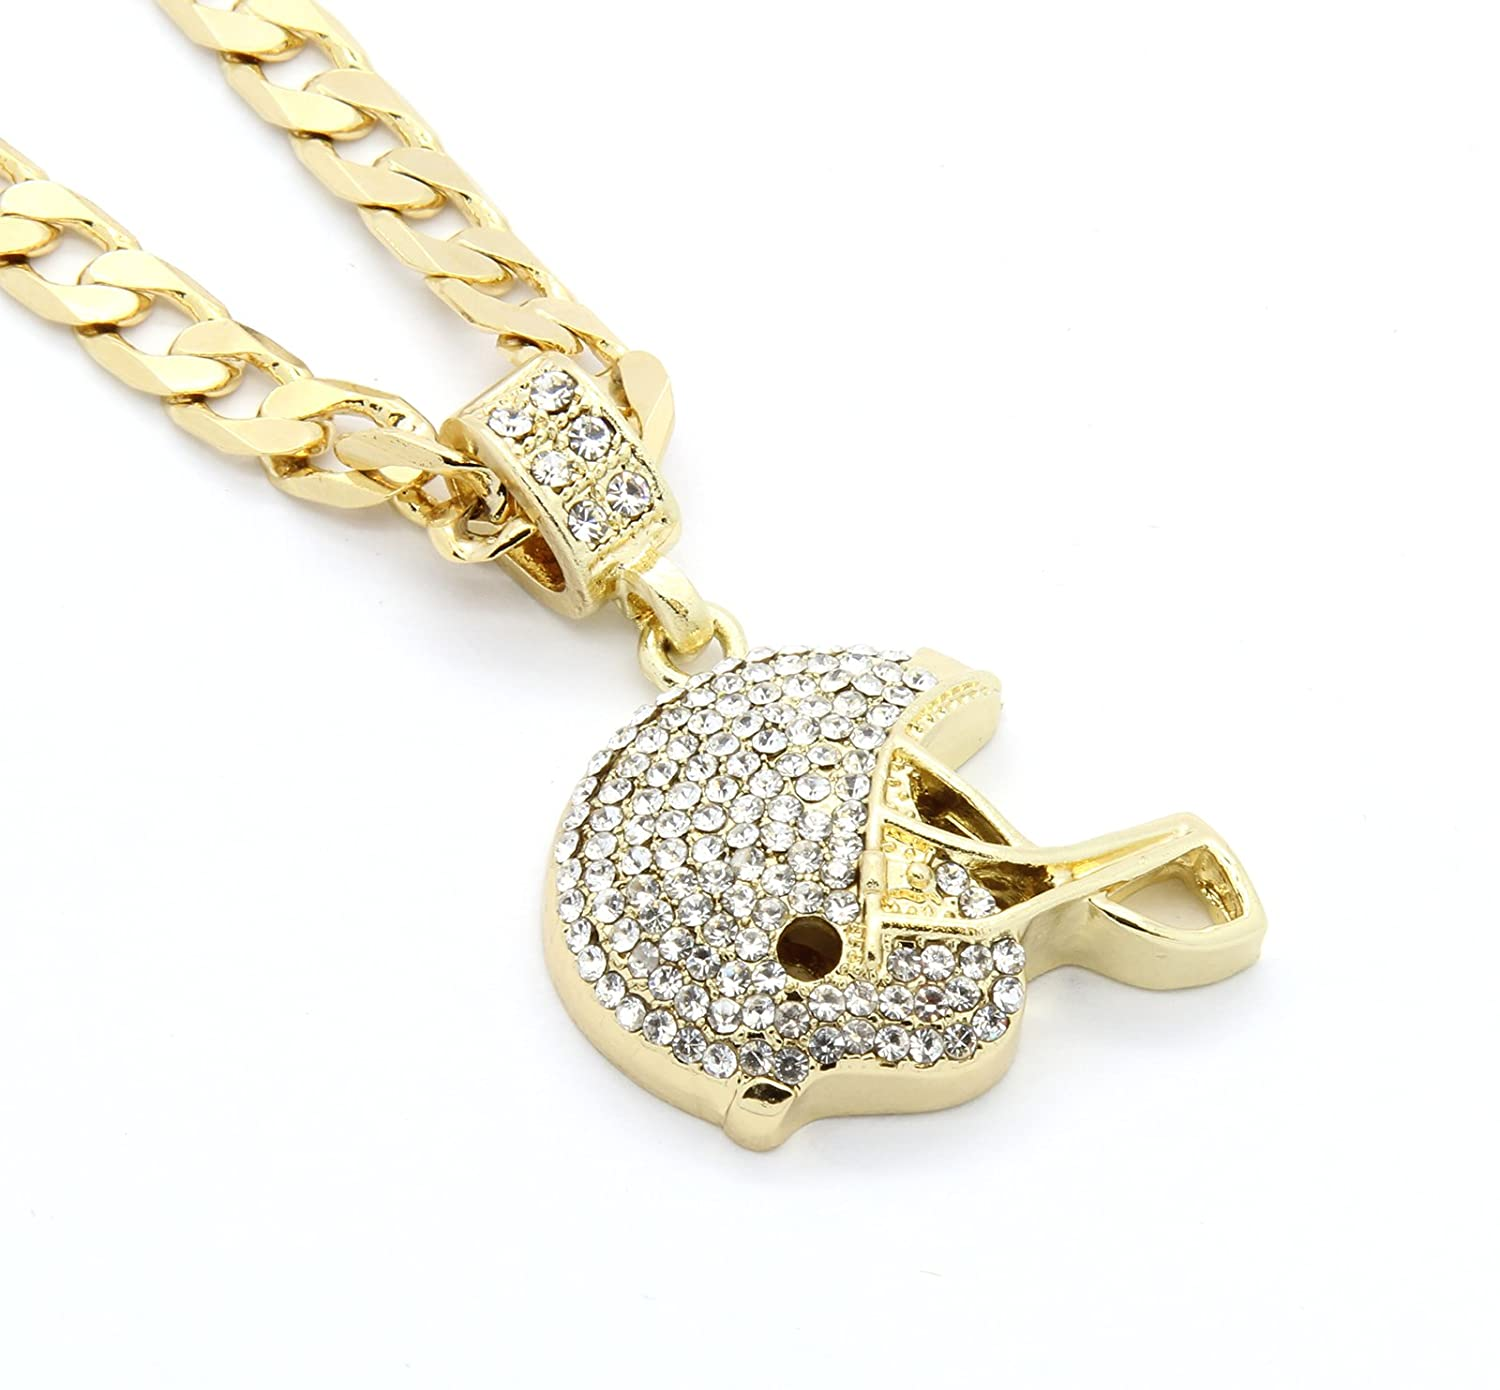 s chain link diamond necklace mens yellow gold chains cuban men